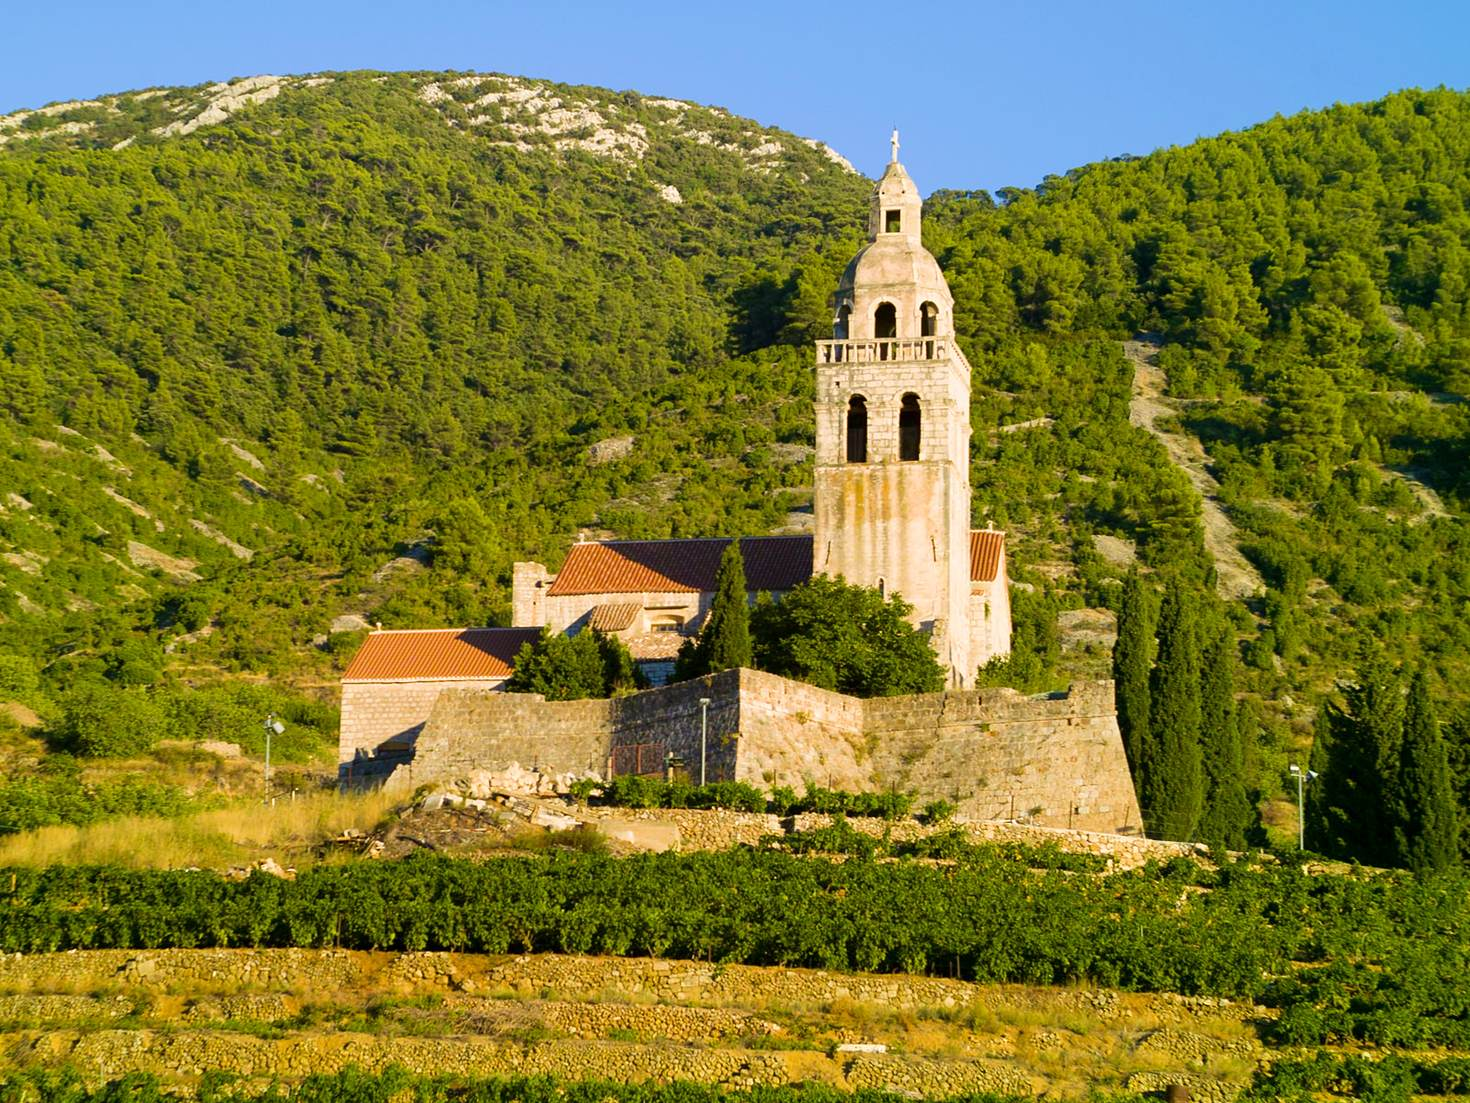 Vineyard and monastery on the Croatian island of Vis © Marnel Tomic / Getty Images